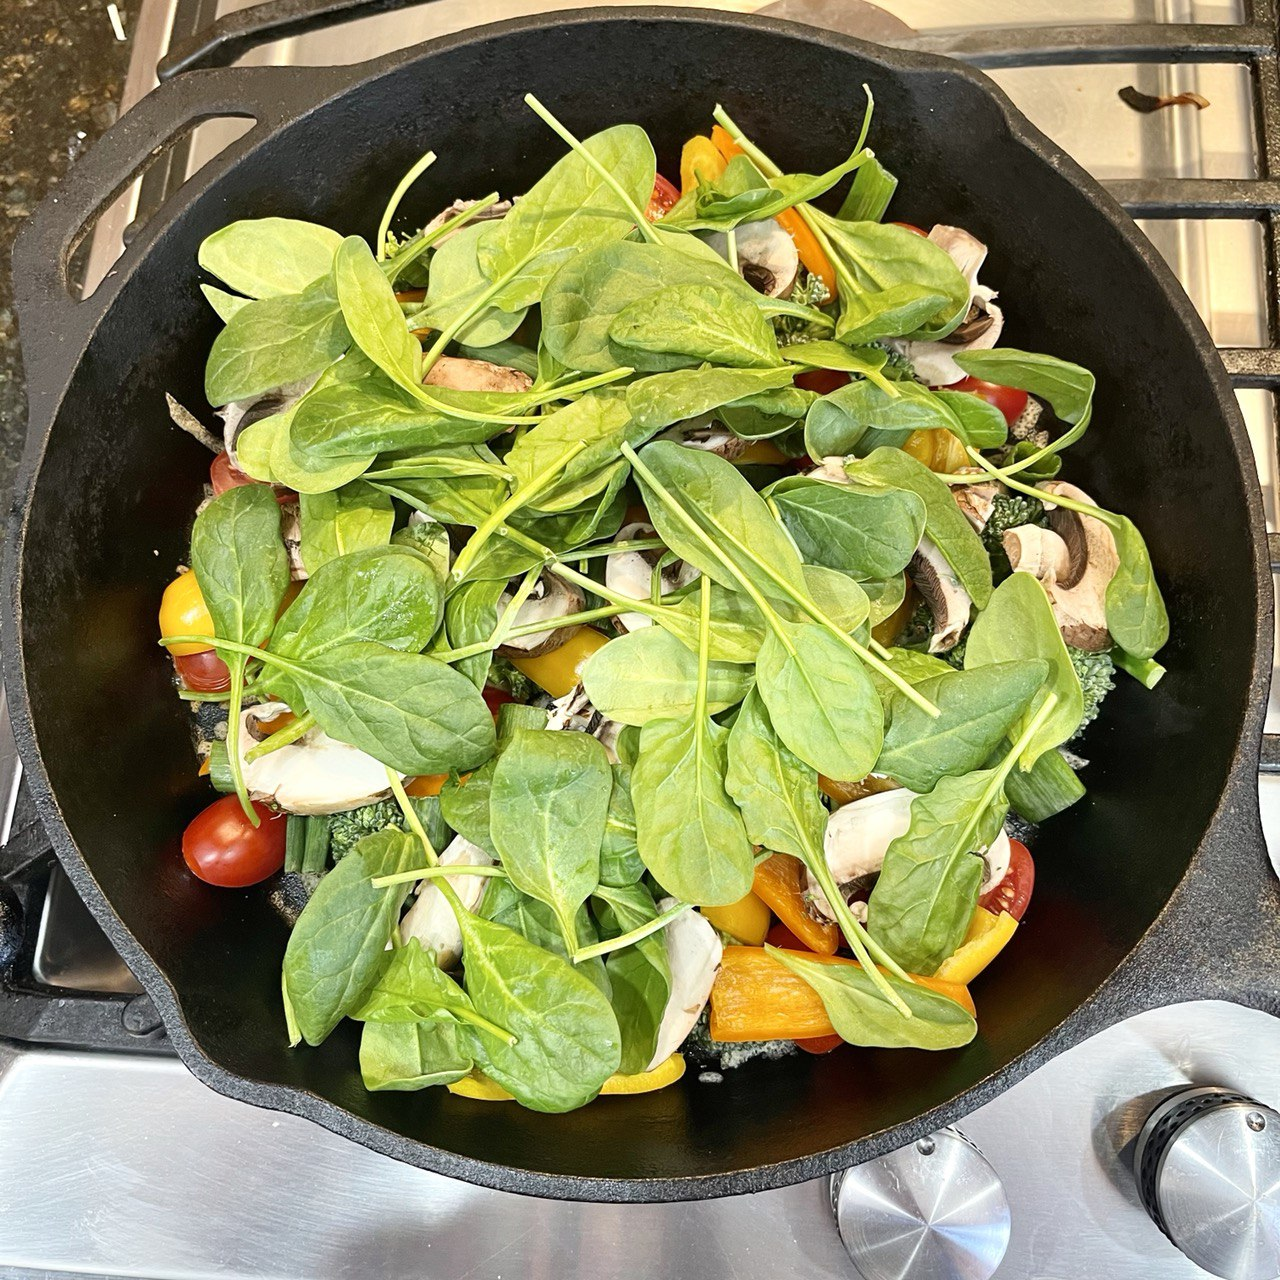 close-up of baby spinach leaves sprinkled evenly over the previously-placed toppings in a 12 inch cast iron skillet